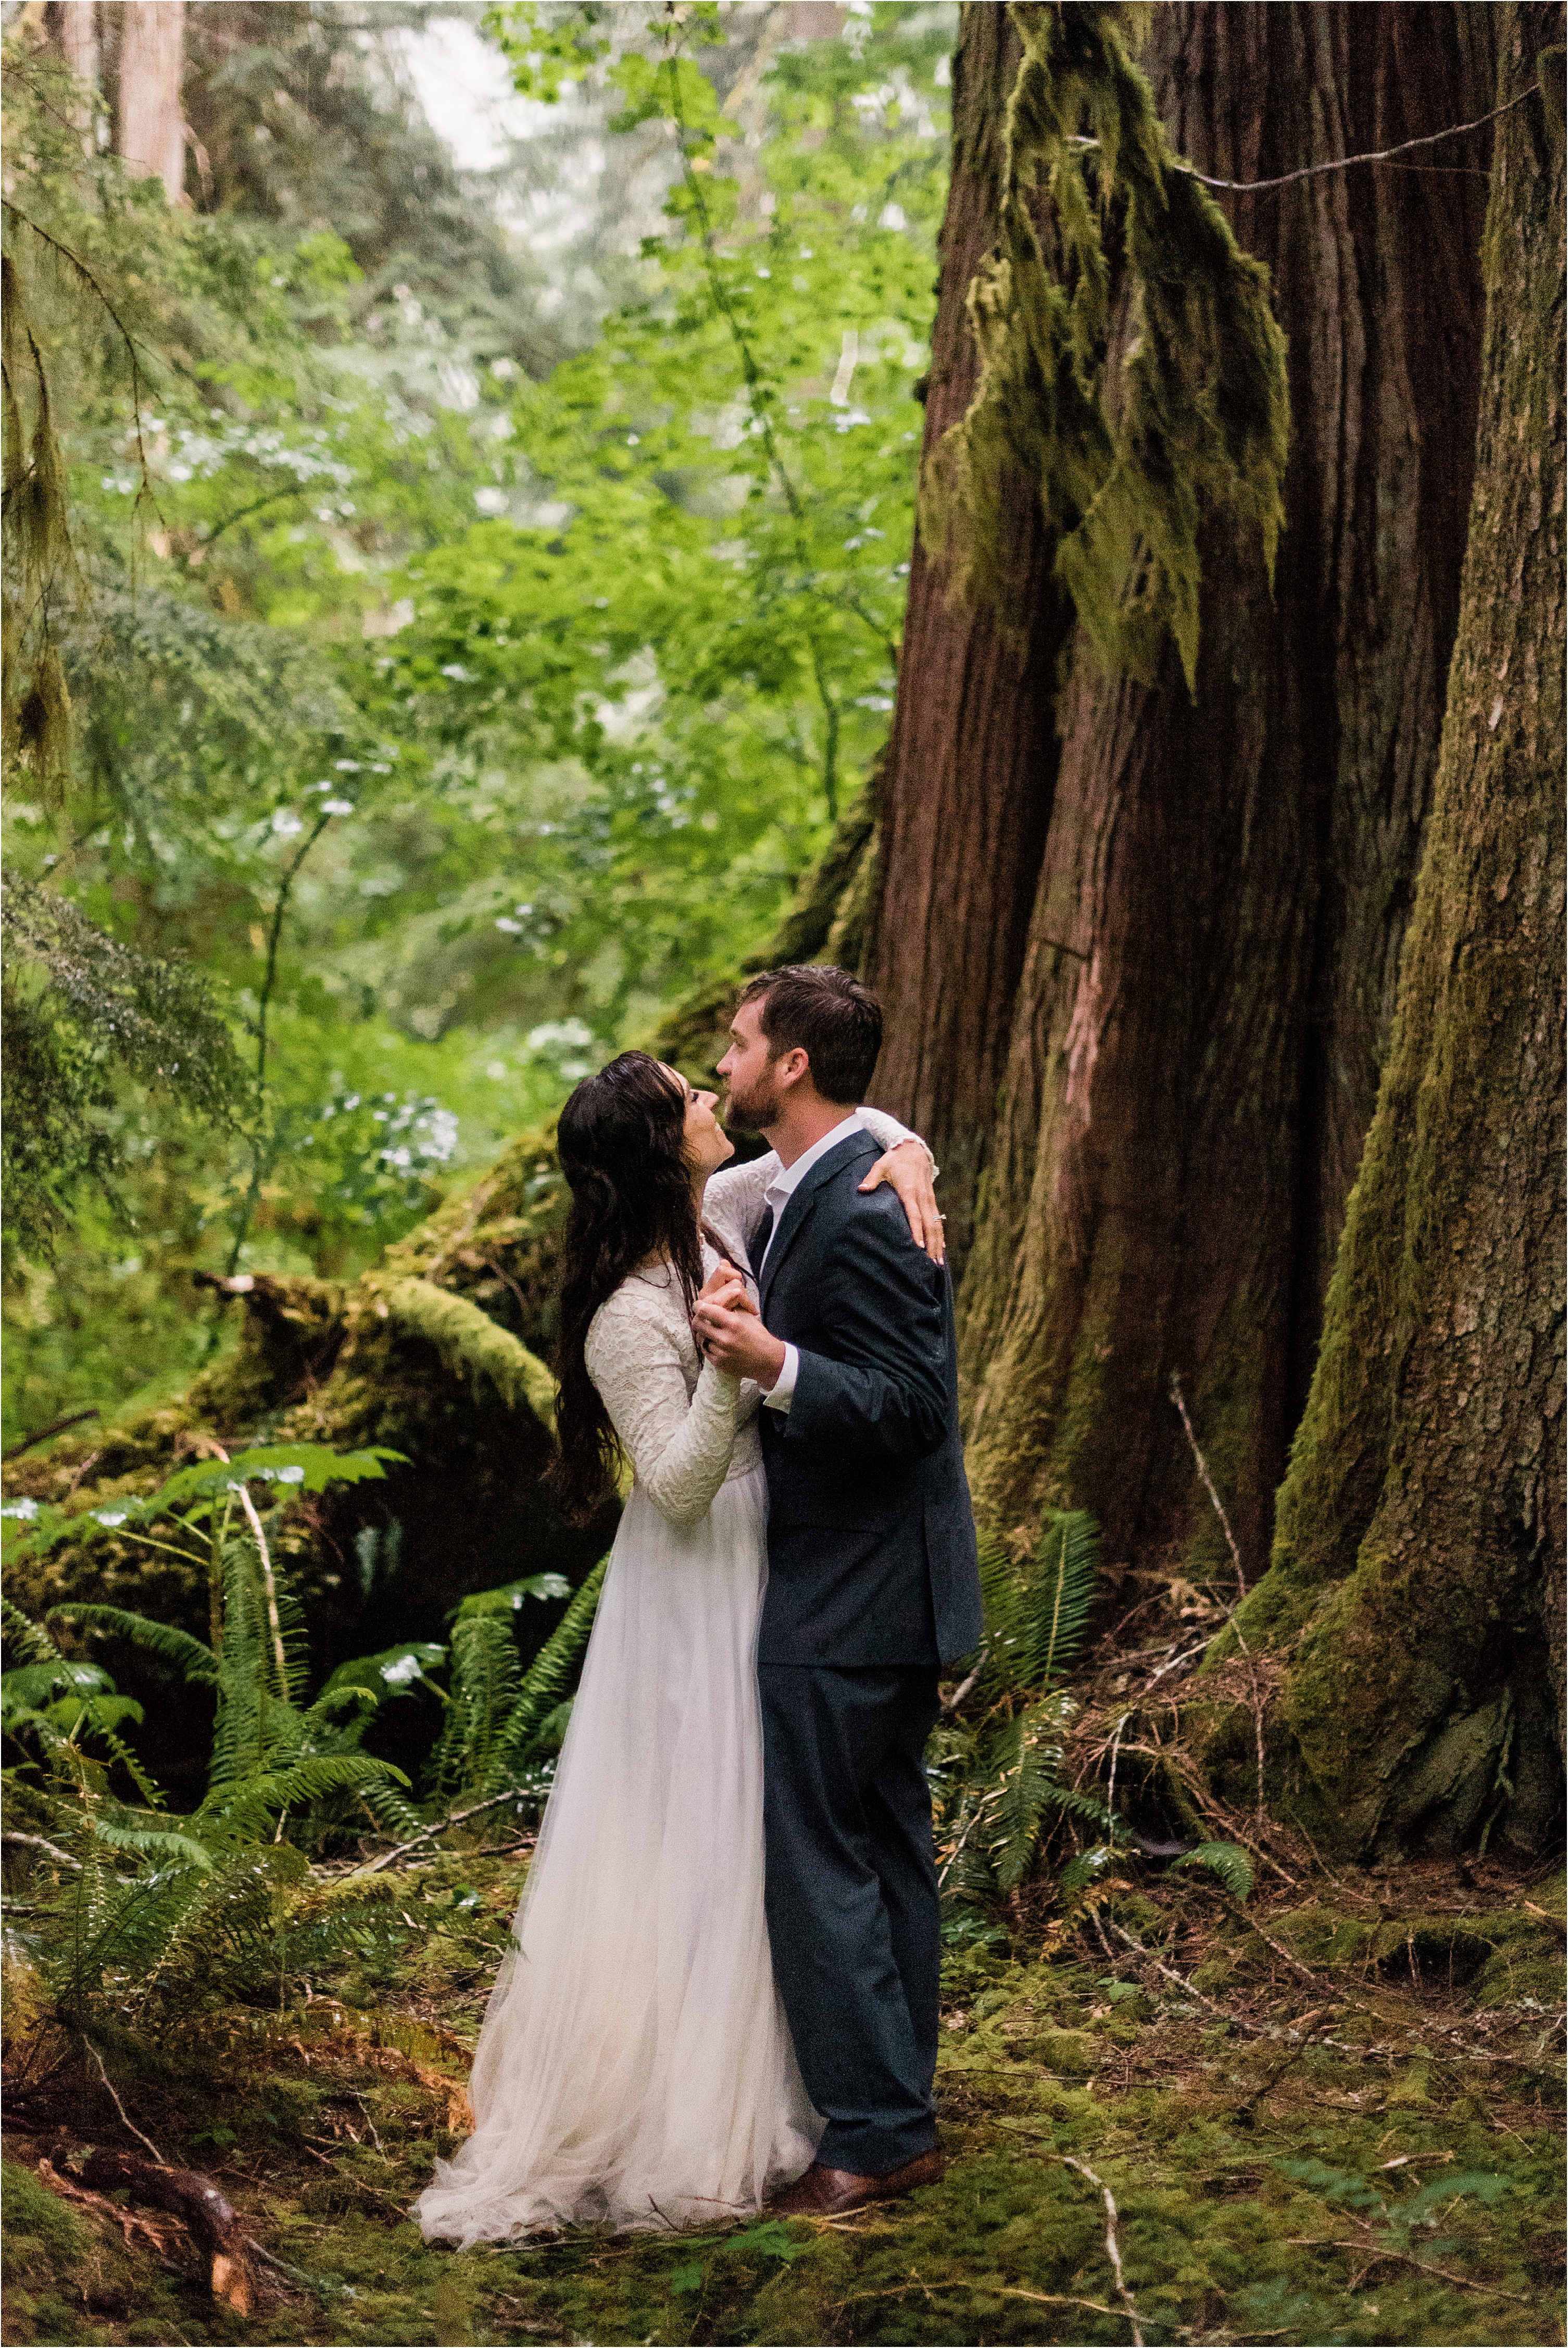 Christina & Tanner's first dance in the forest to top off their Mt. Baker elopement. Image by Forthright Photo, Seattle Elopement Photographers.